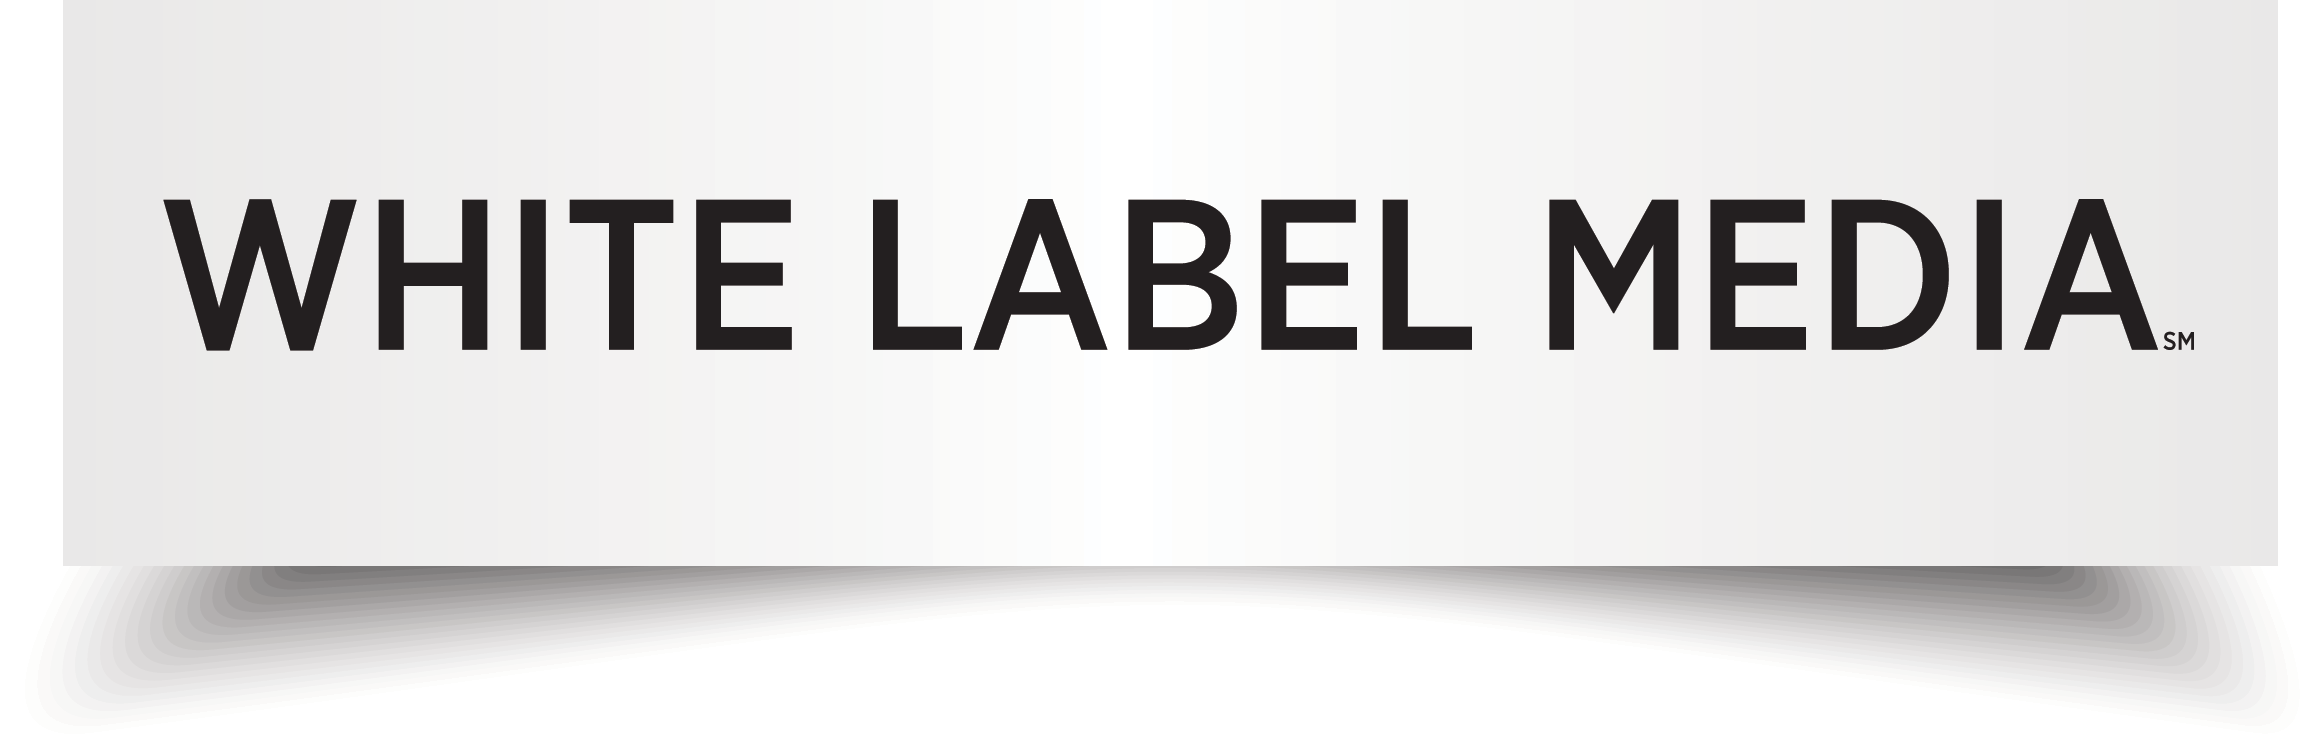 White Label Media Agency